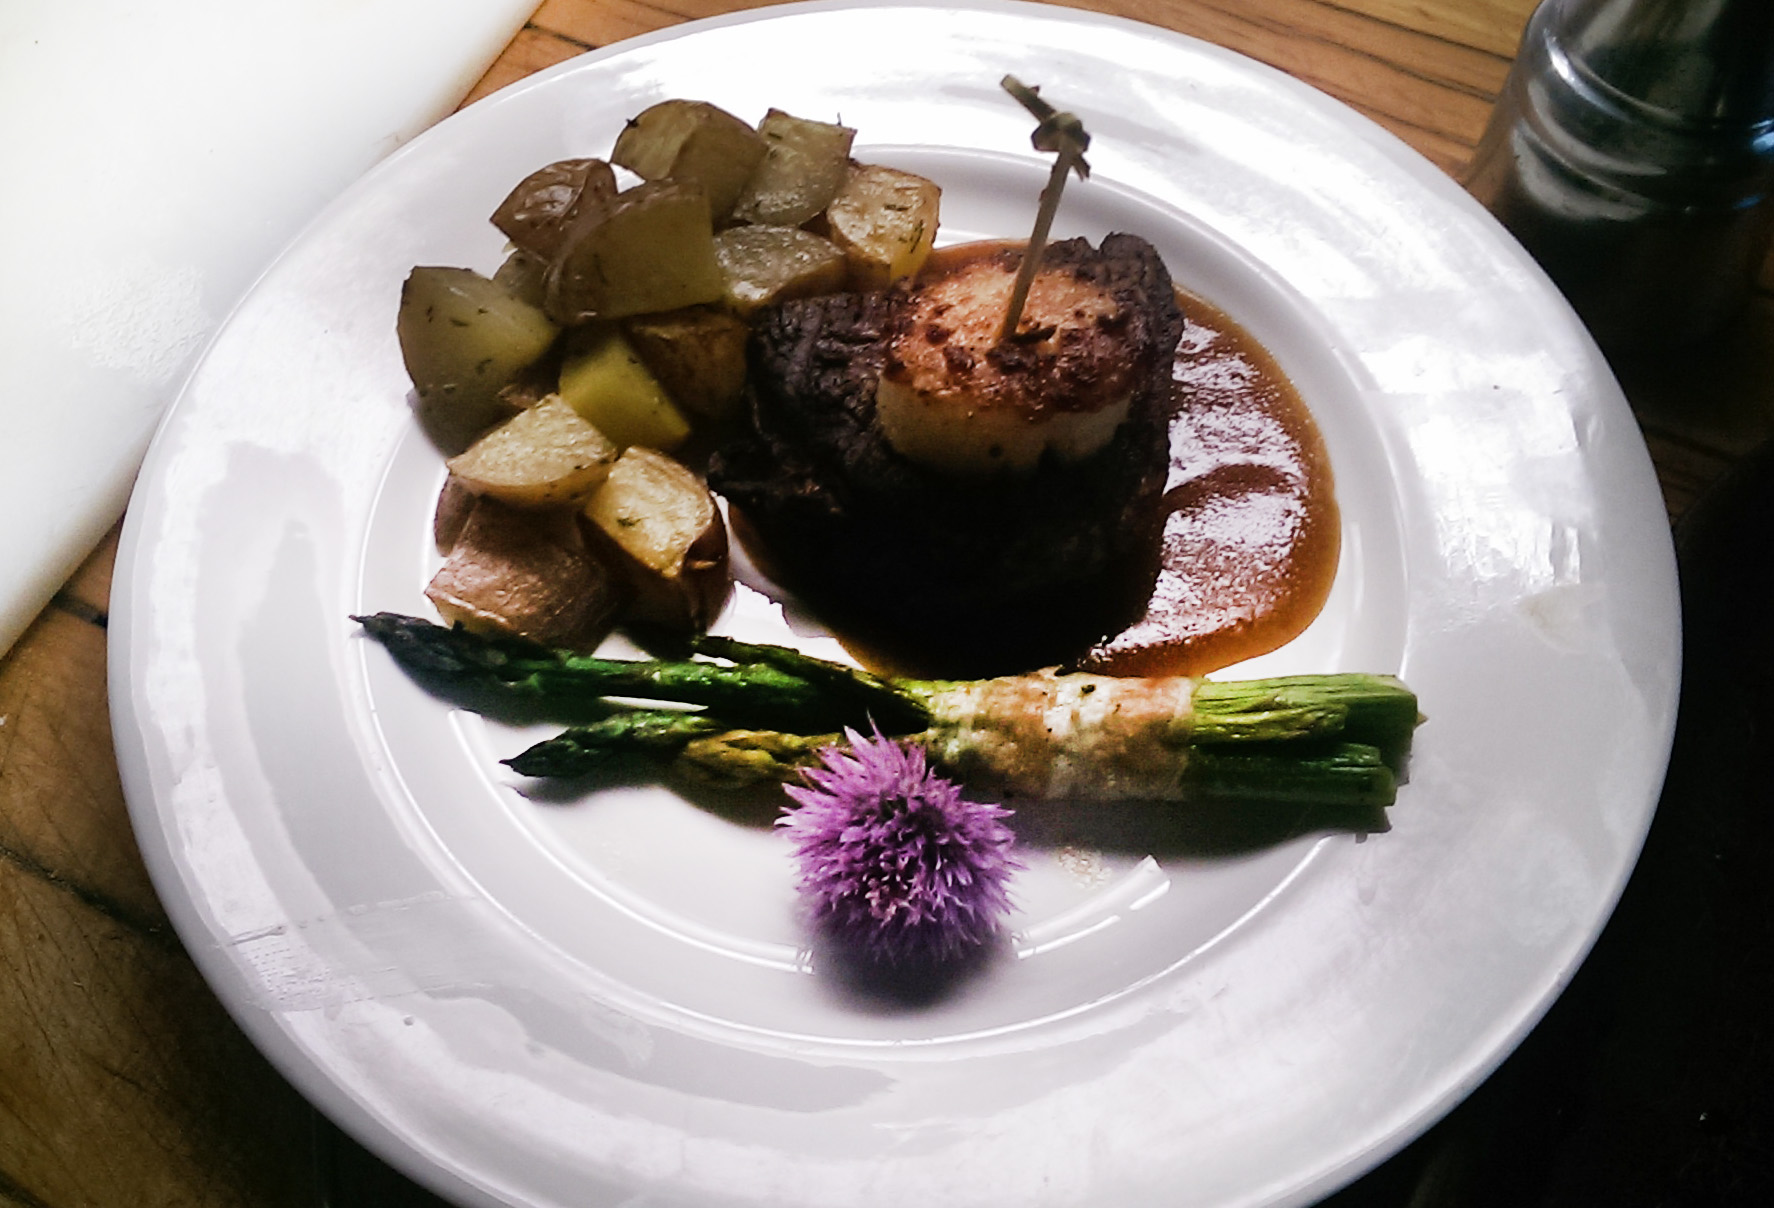 Filet and Scallop Surf and Turf with prosciutto Wrapped Asparagus and Roasted Potatoes